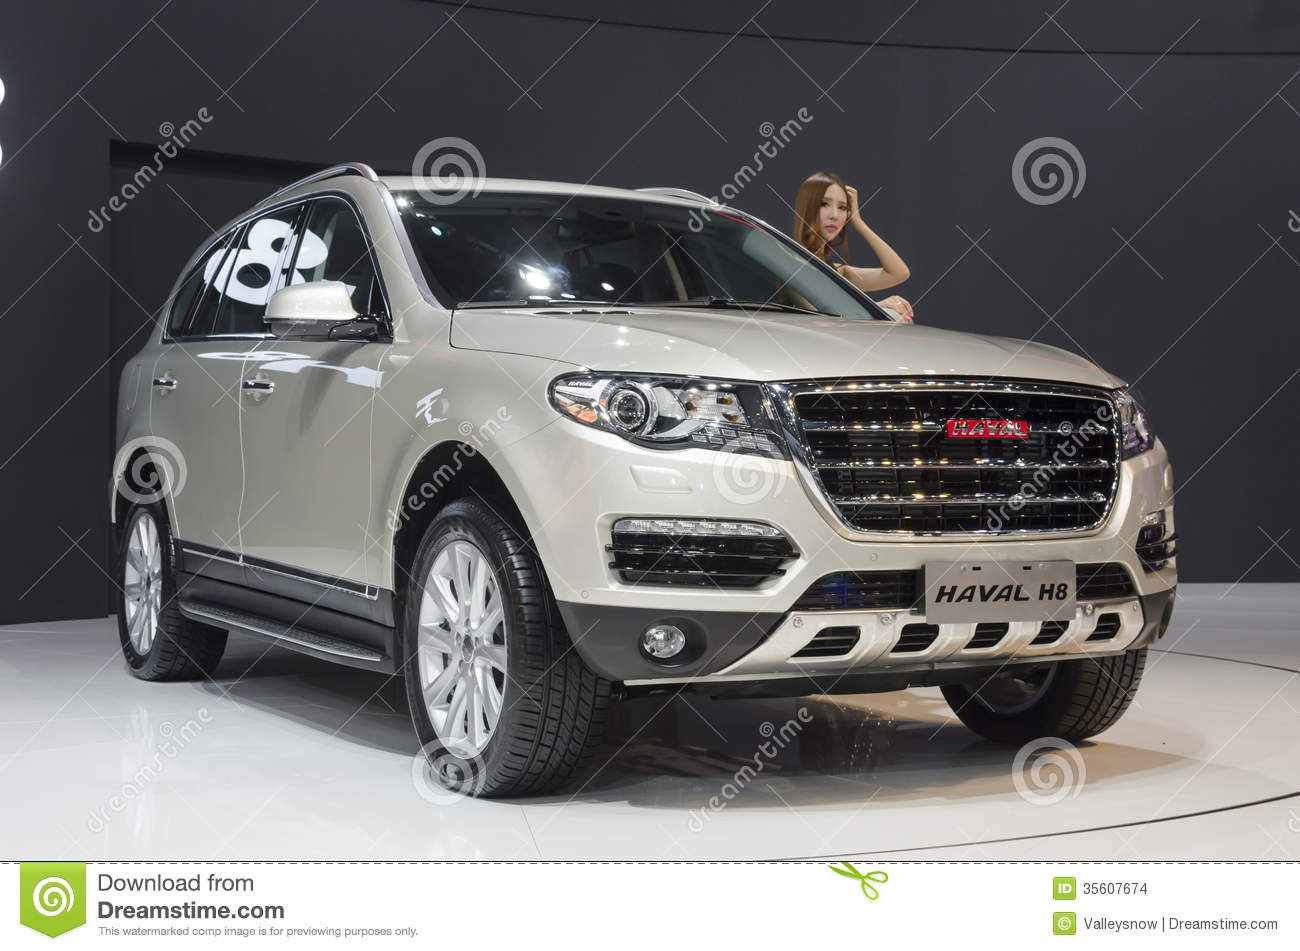 2013 gz autoshow haval h8 suv editorial stock image for Great wall motors stock